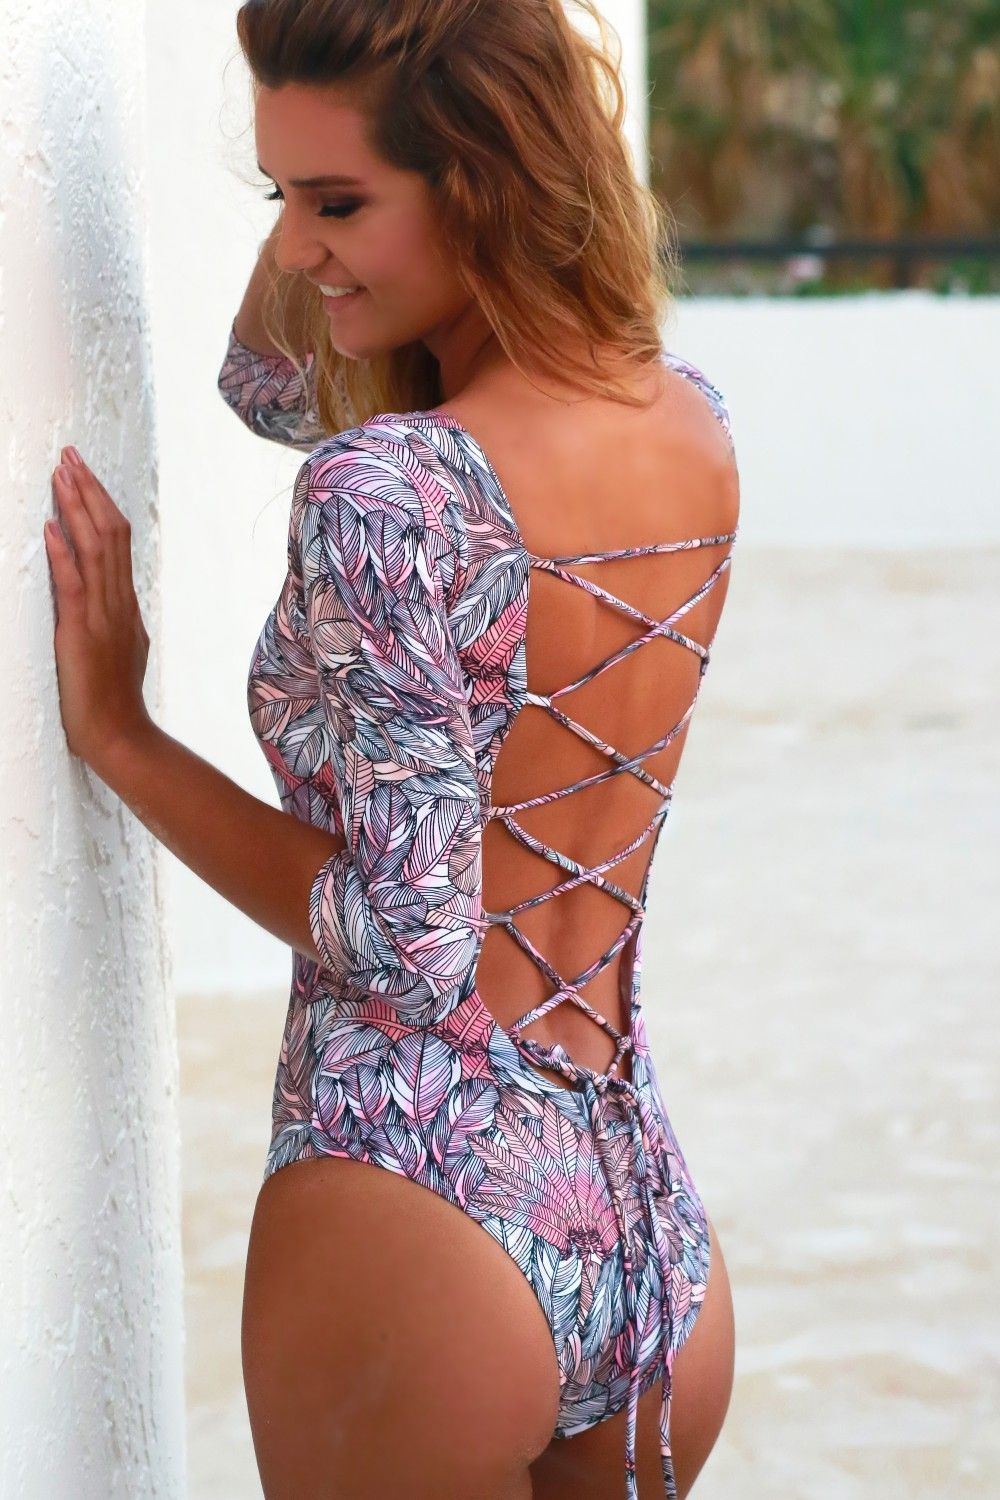 473cfb890b6d4 Long Sleeve One Piece Swimsuit Multi, A twist on a classic one piece! With